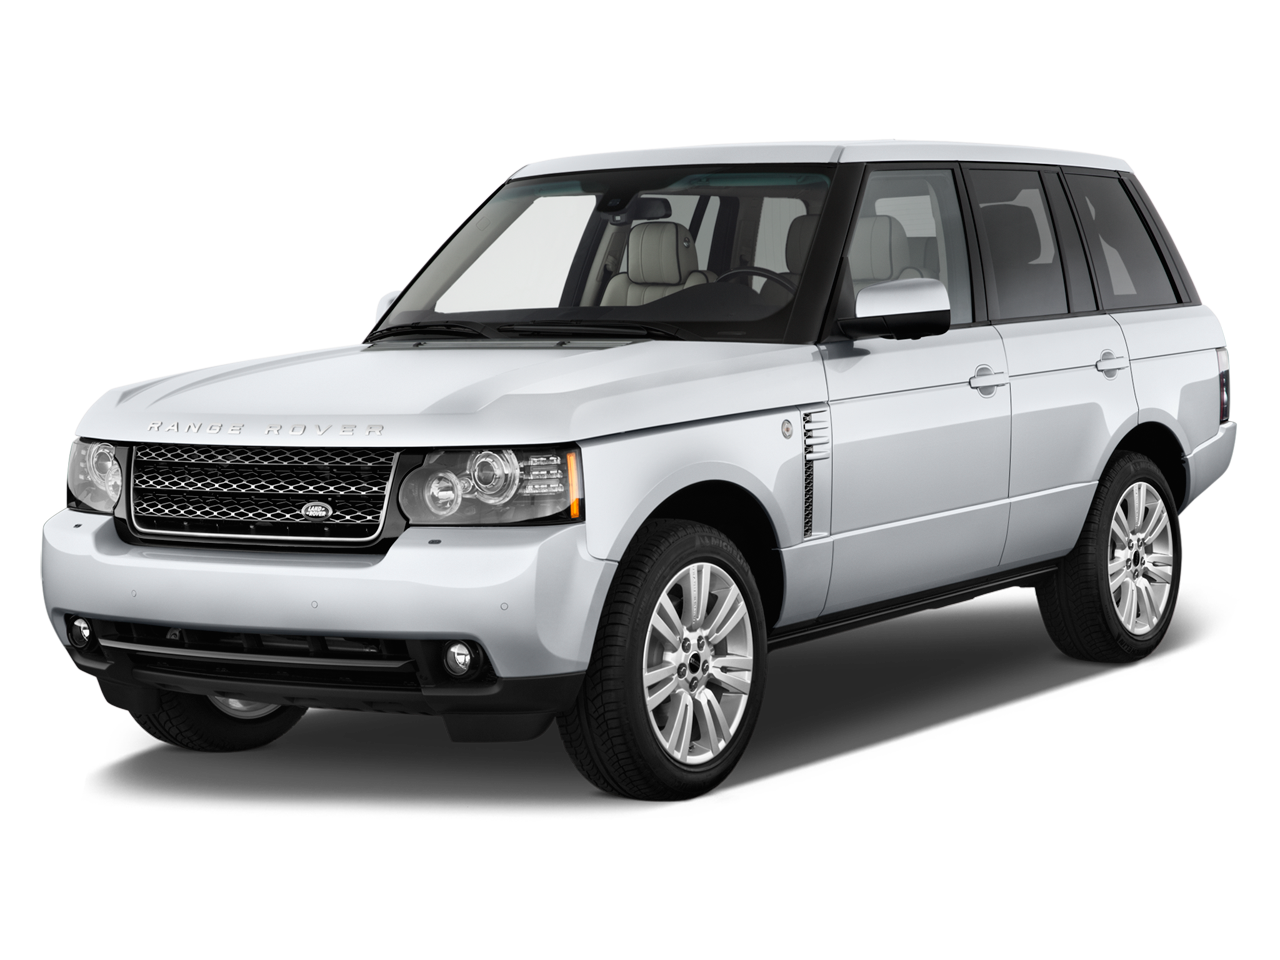 used range rover prices 35 free car wallpaper. Black Bedroom Furniture Sets. Home Design Ideas